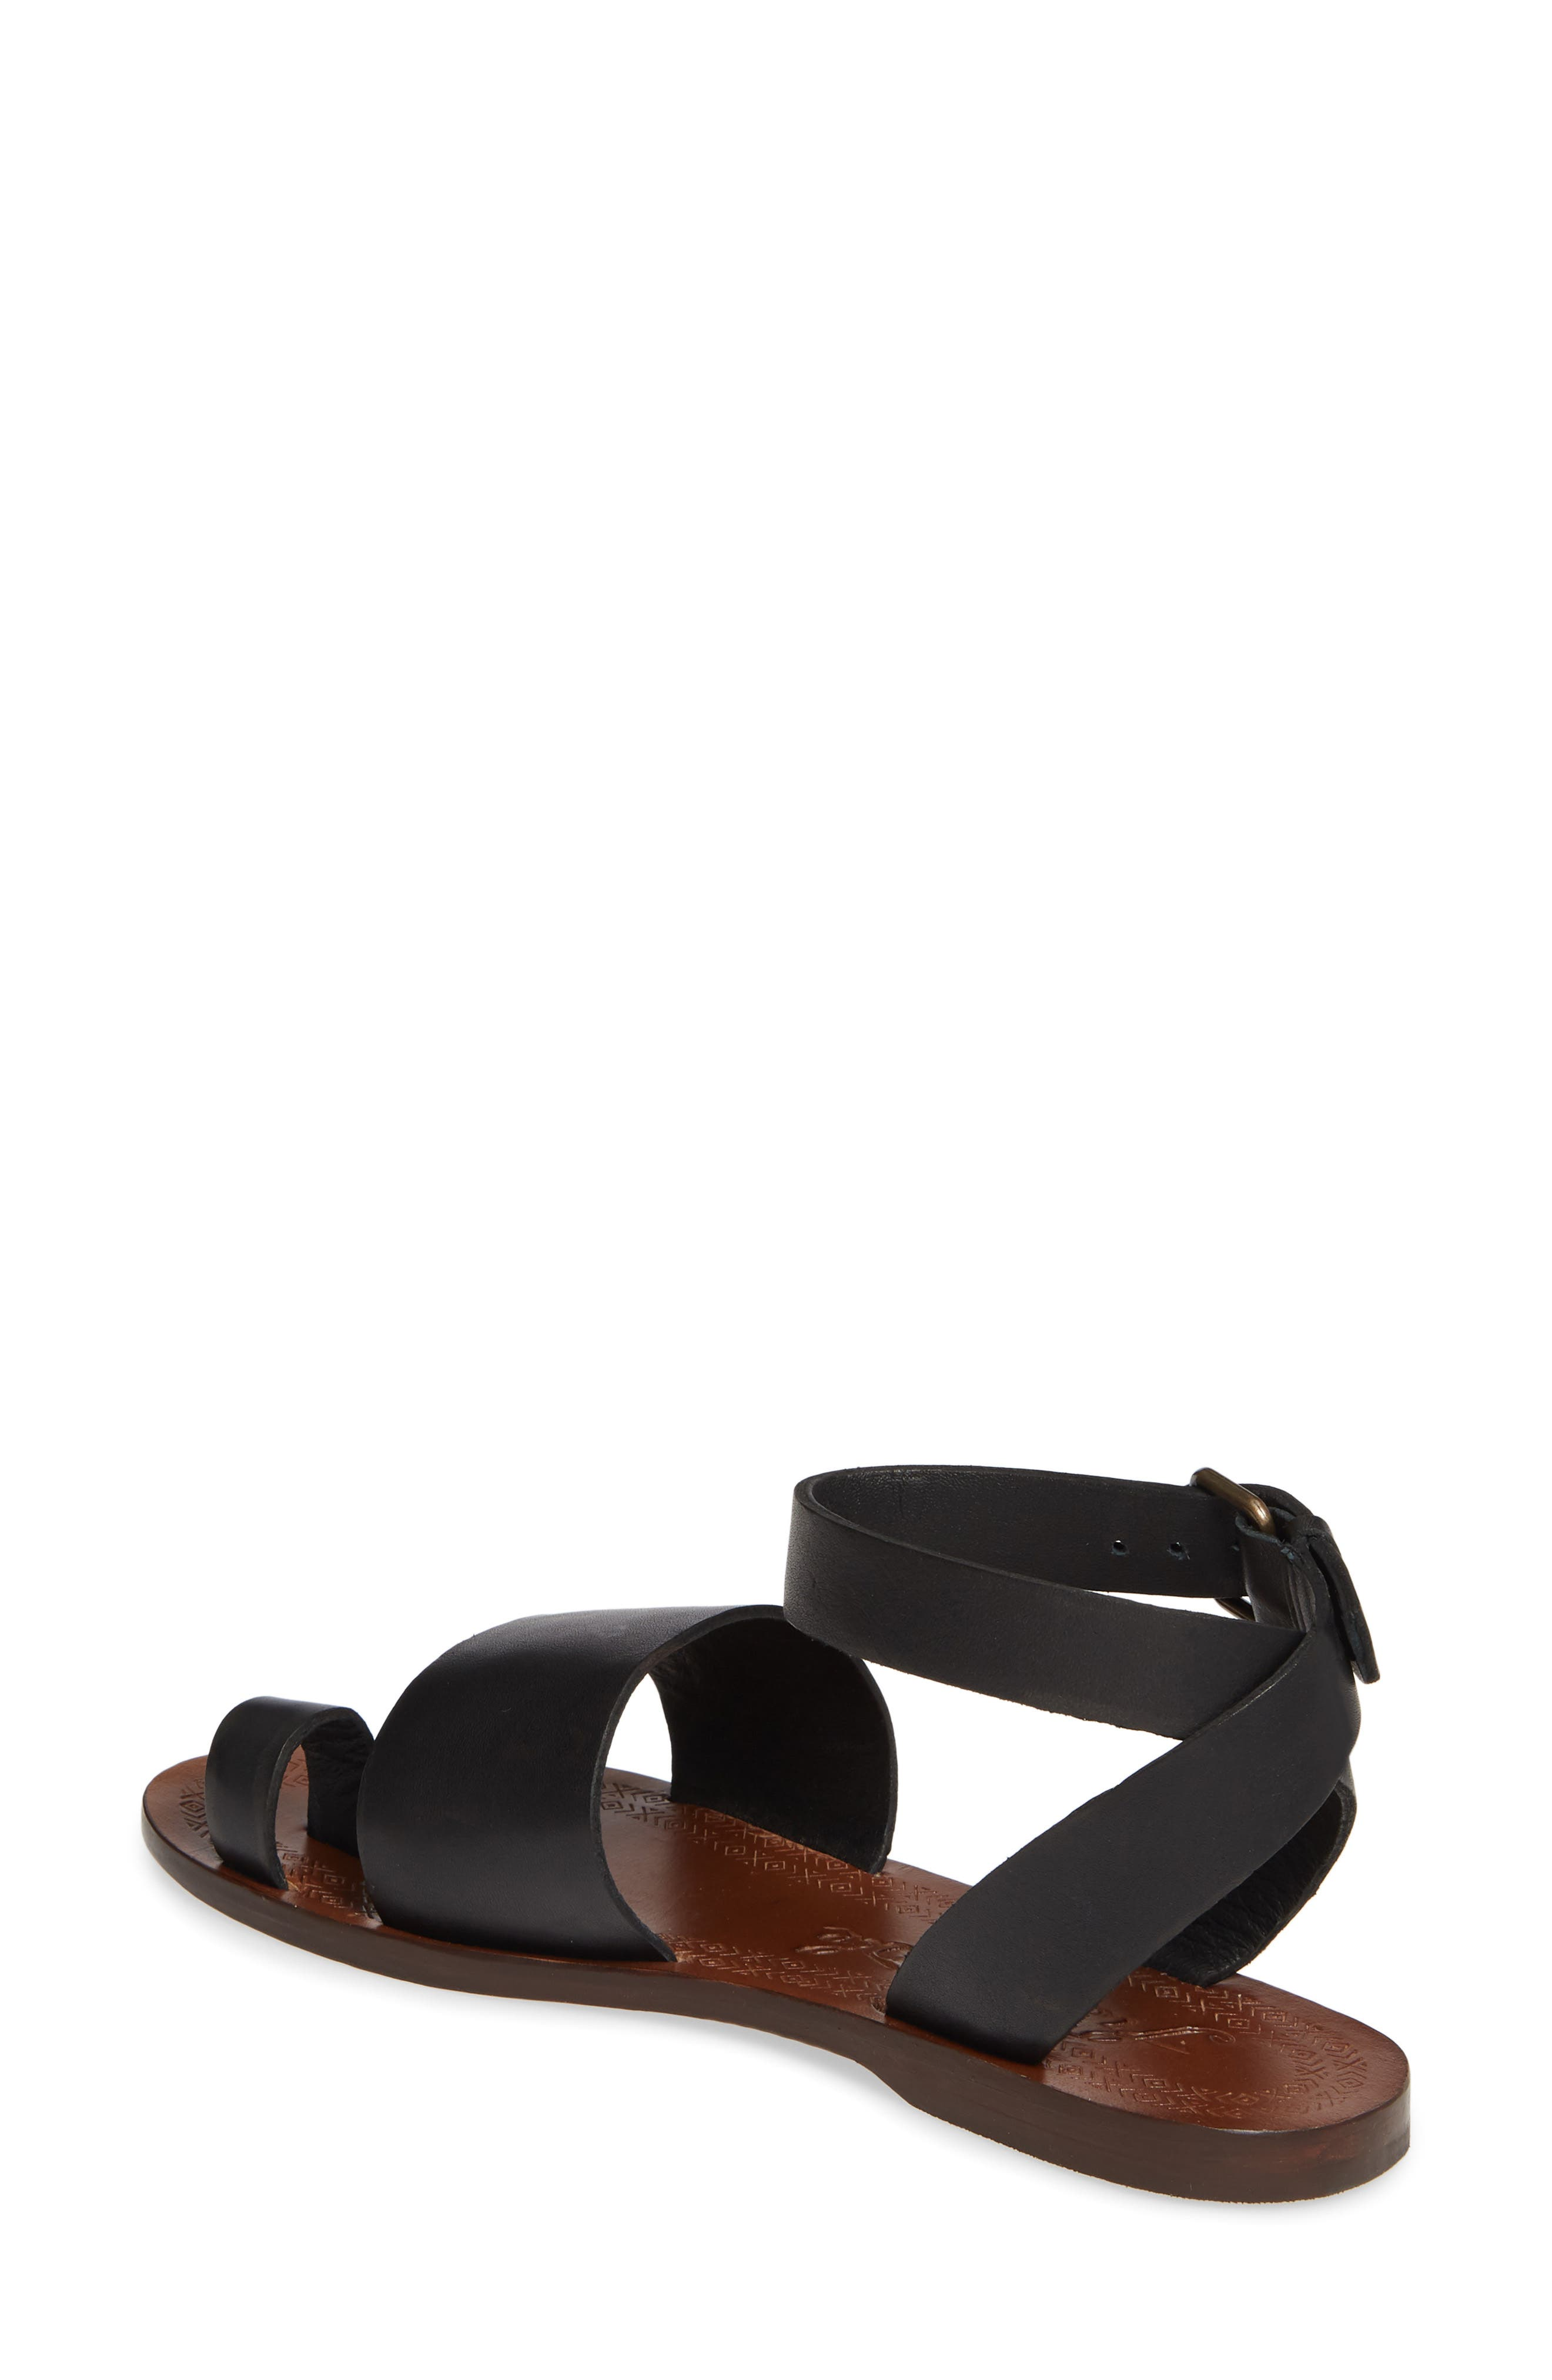 FREE PEOPLE, Torrence Ankle Wrap Sandal, Alternate thumbnail 2, color, OXFORD/ SANG